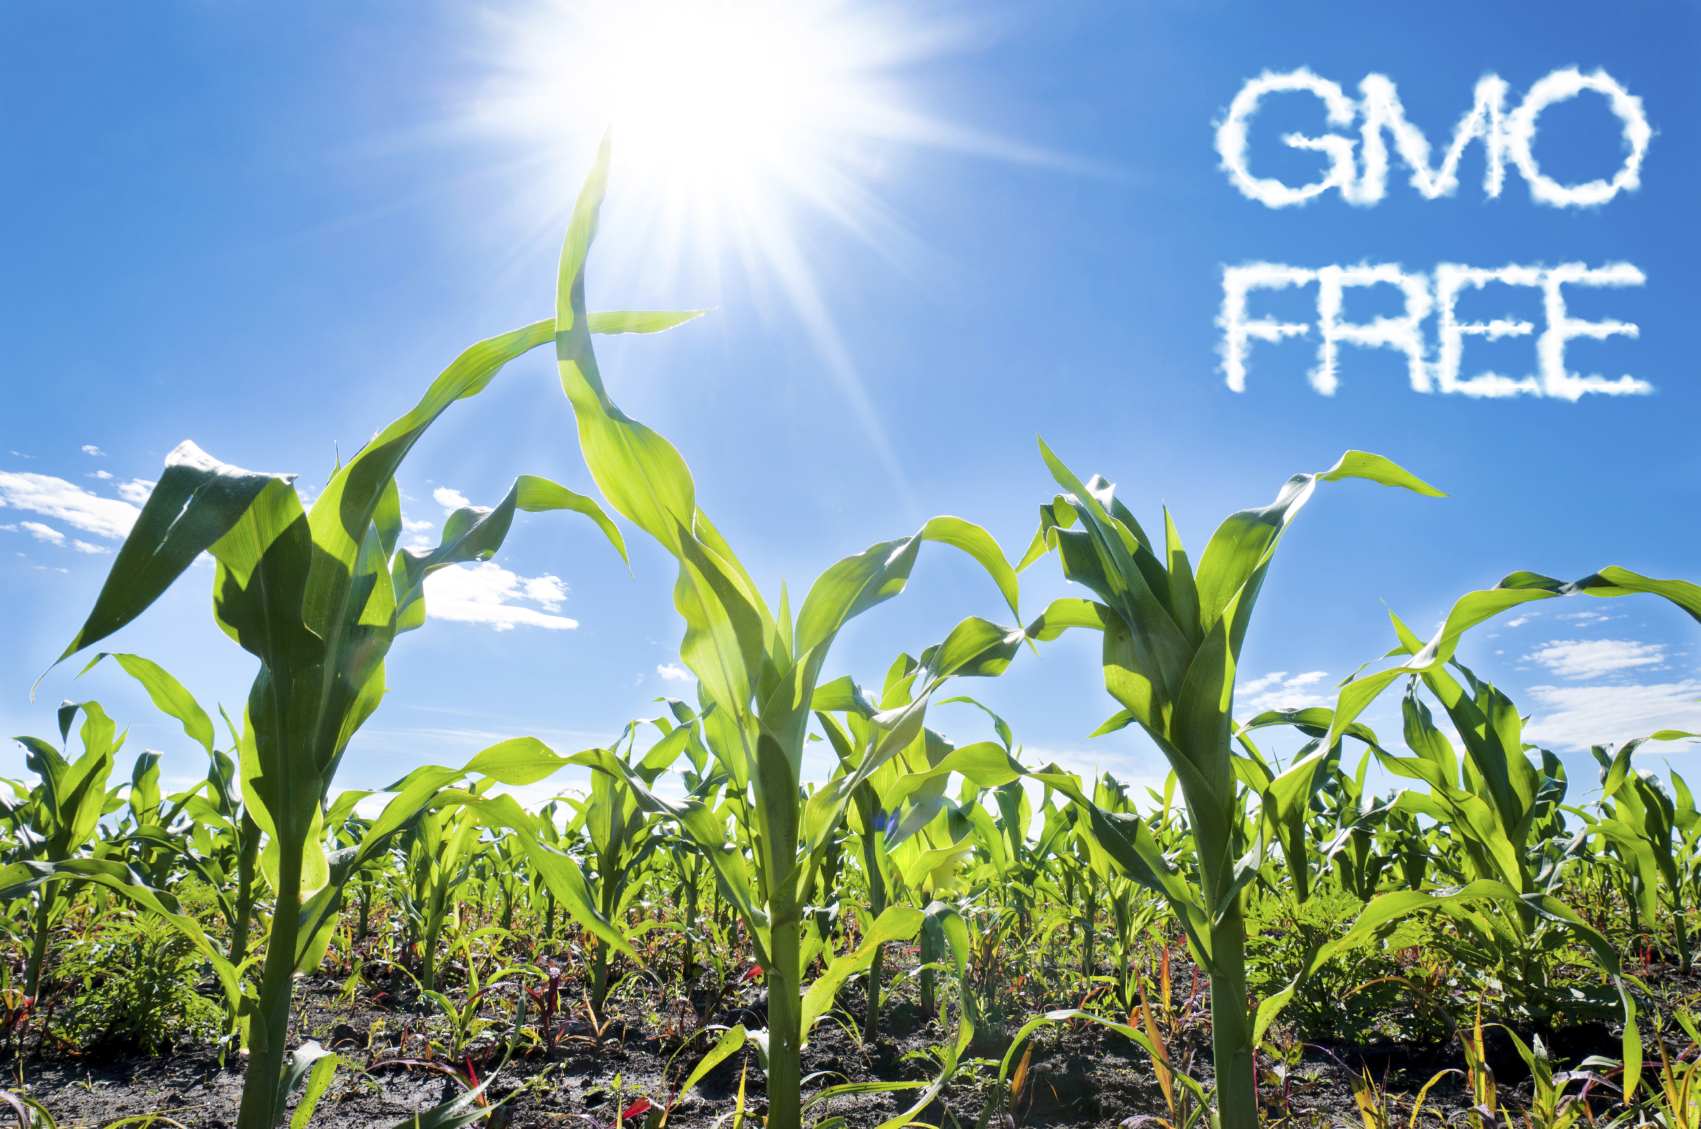 GMO Free and corn in field